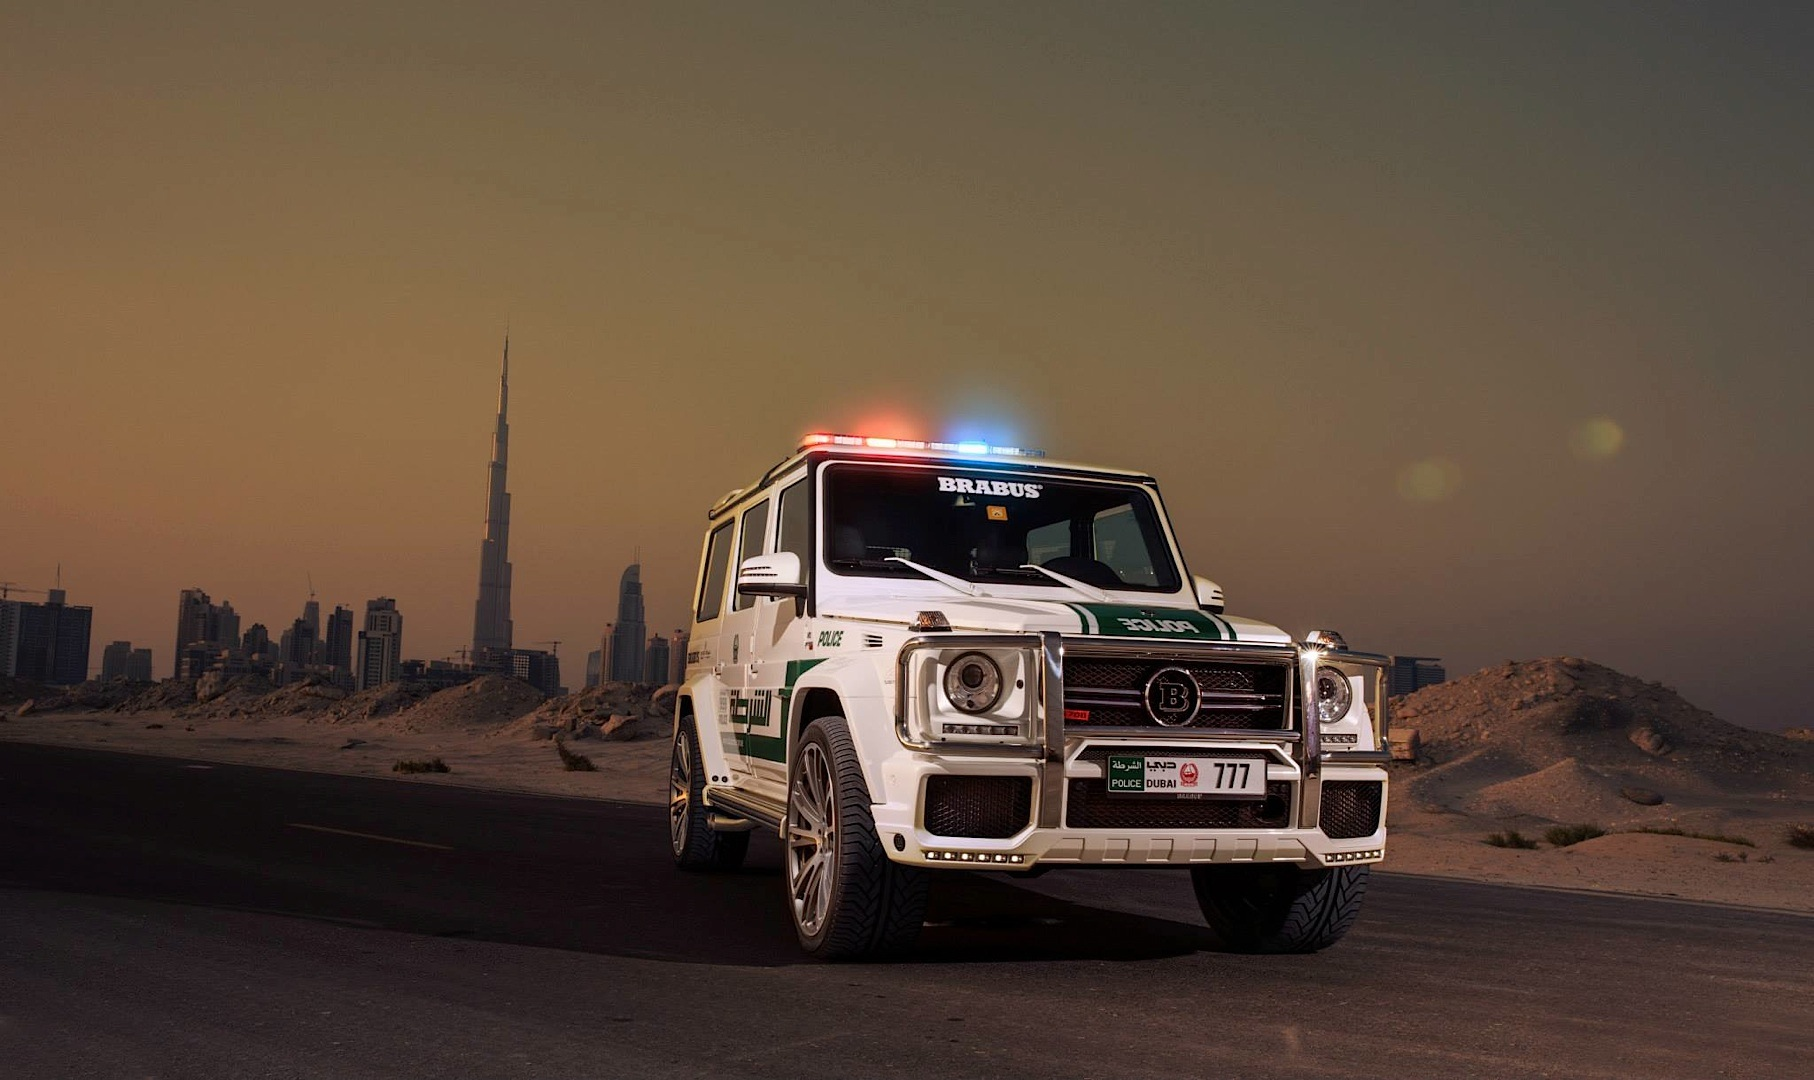 700 Hp Brabus Mercedes G63 Amg Becomes Dubai Police Car